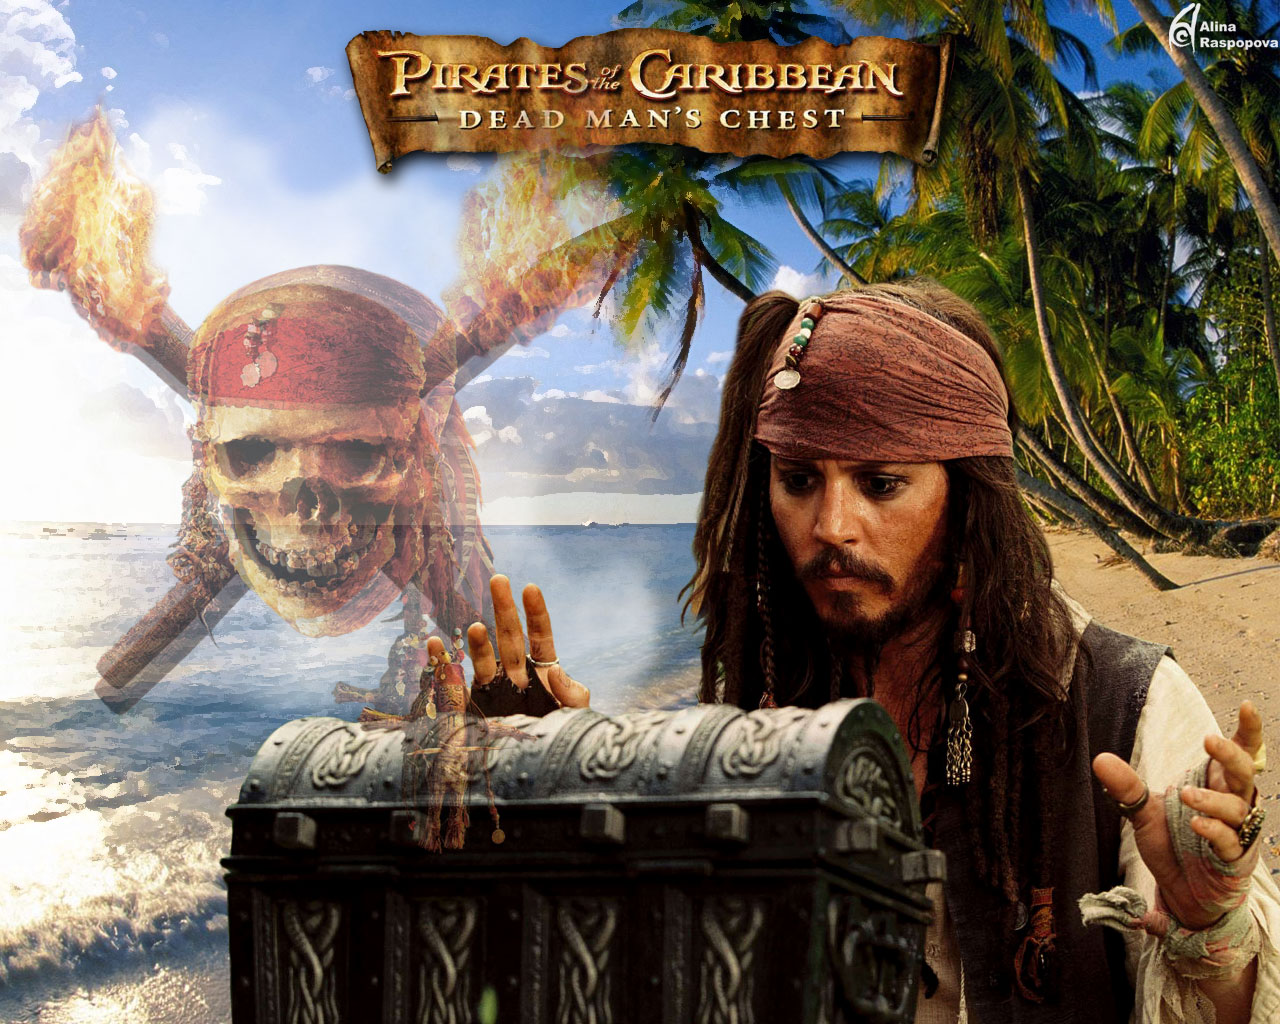 Pirates of the caribbean 2 wallpaper, 'pirates of the caribbean 2 1